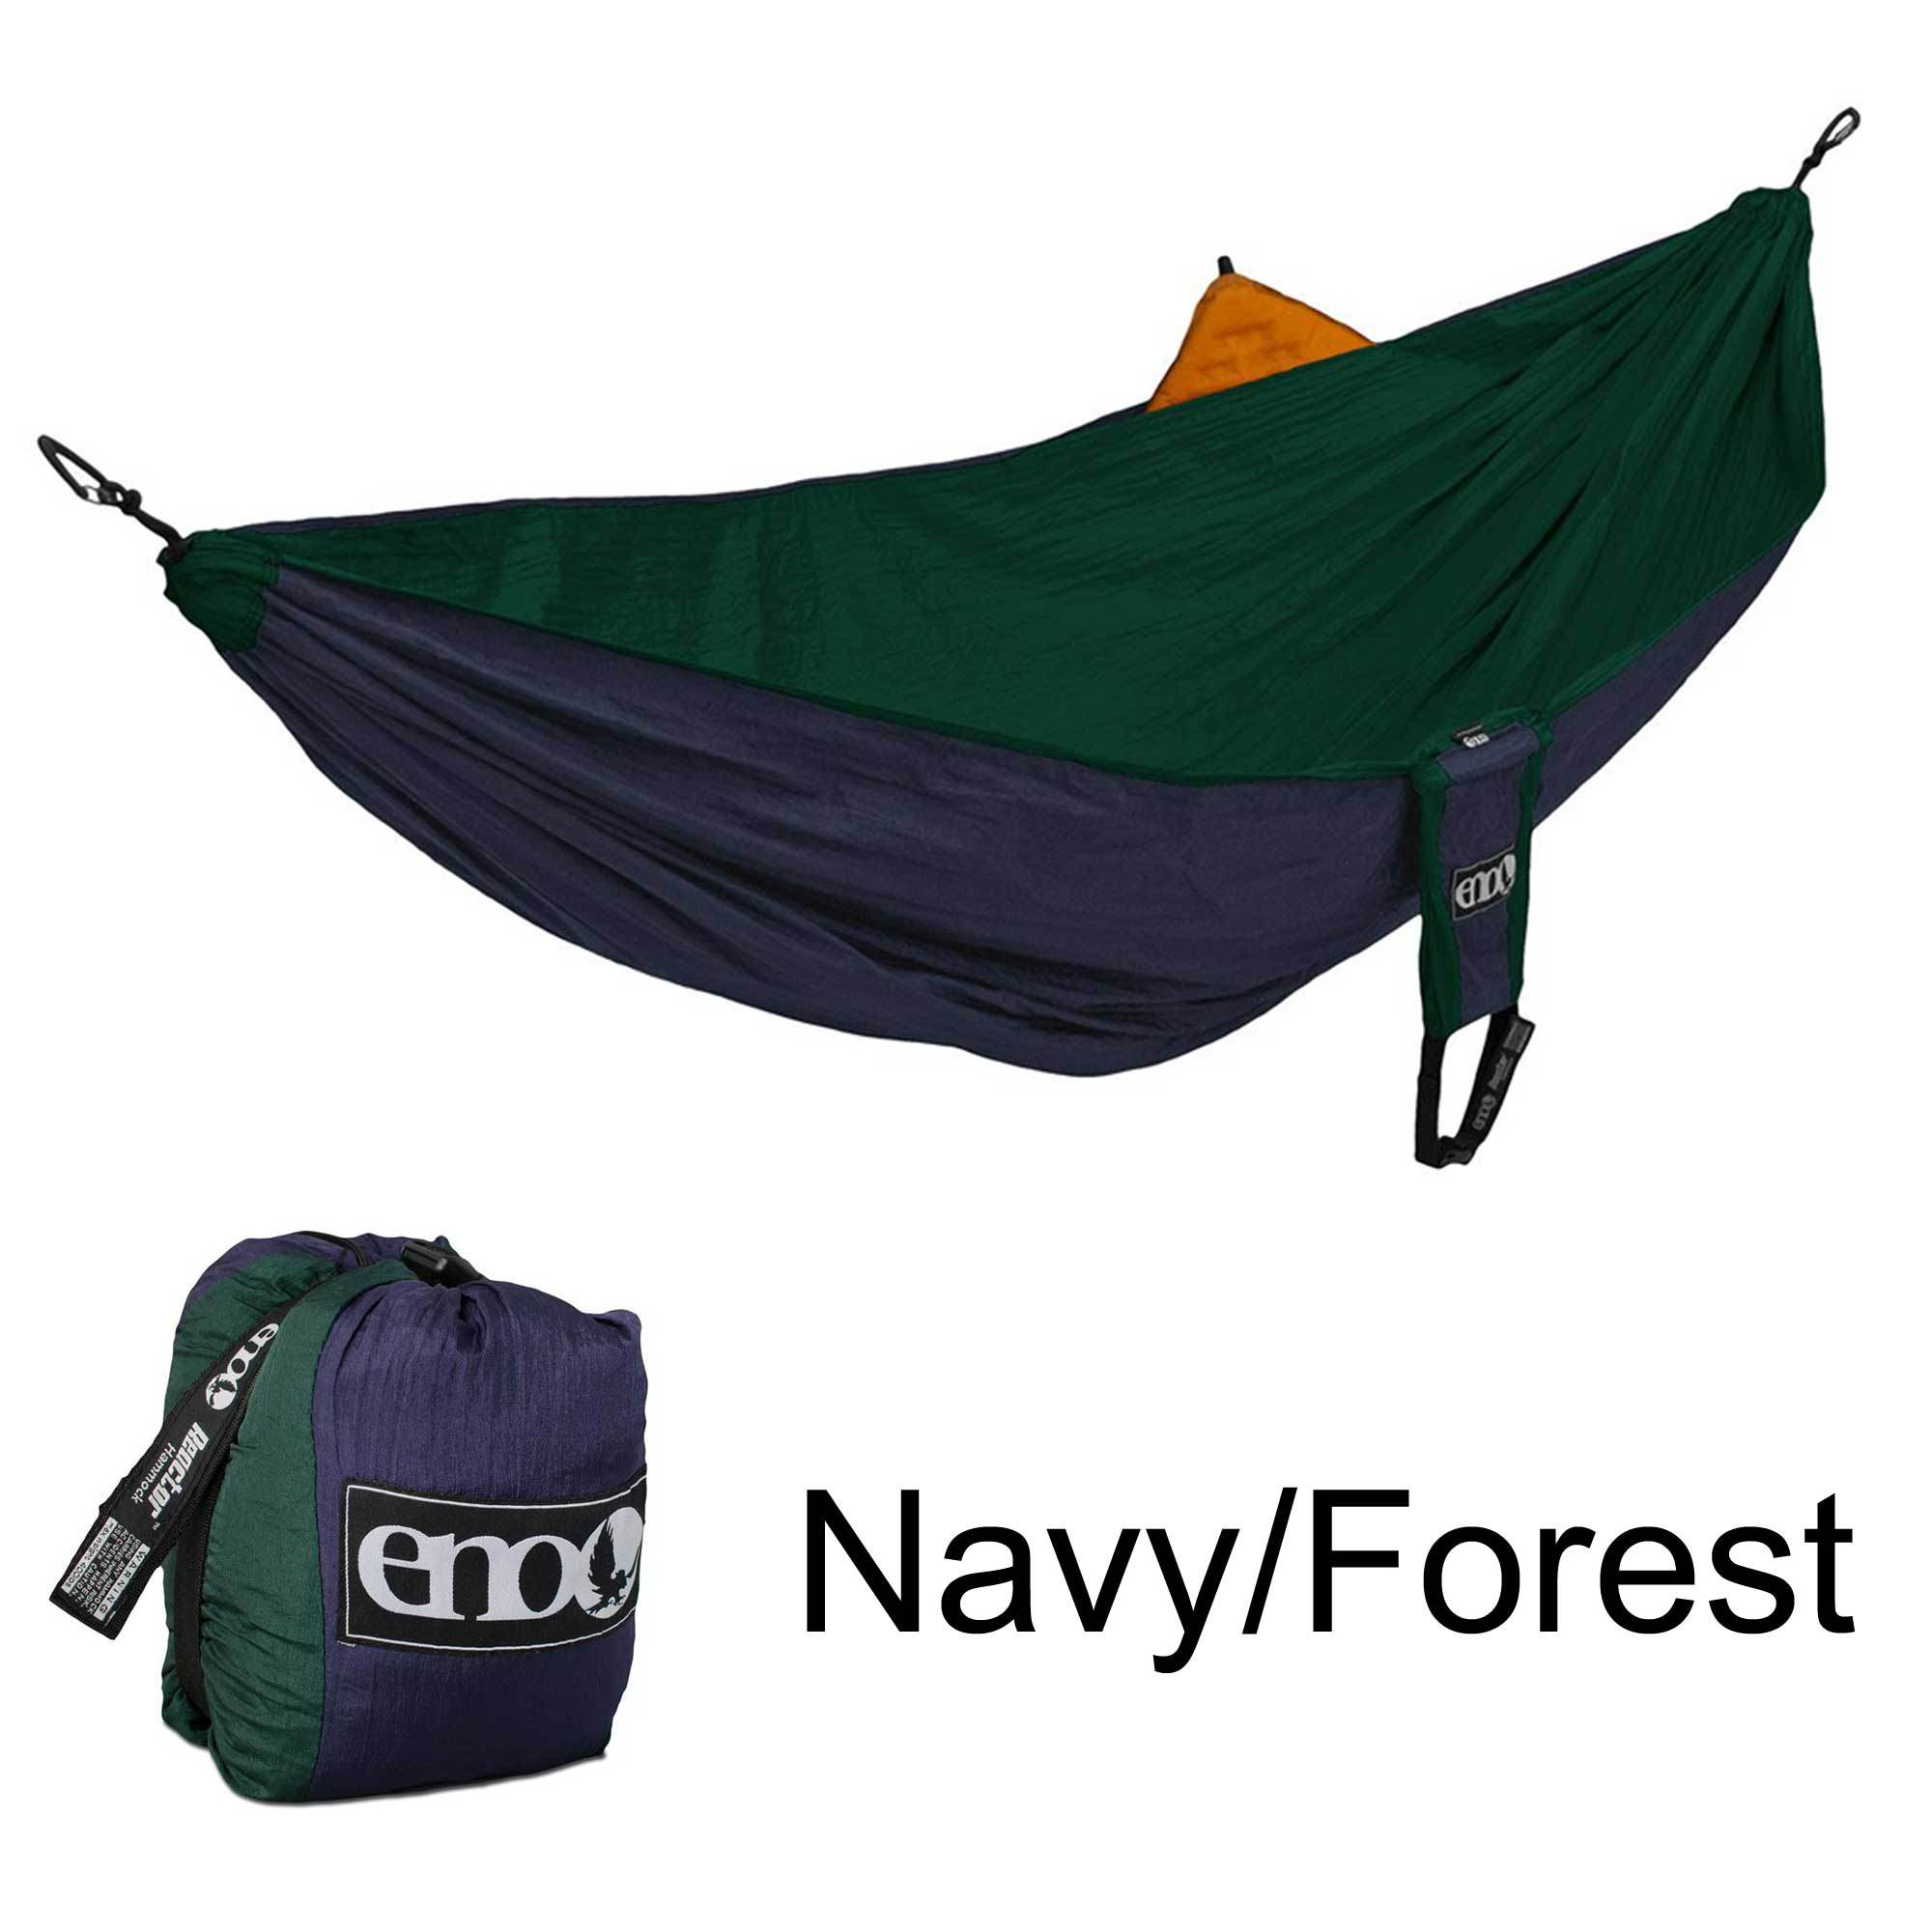 Medium image of eno reactor hammock    eno reactor hammock    eno reactor hammock